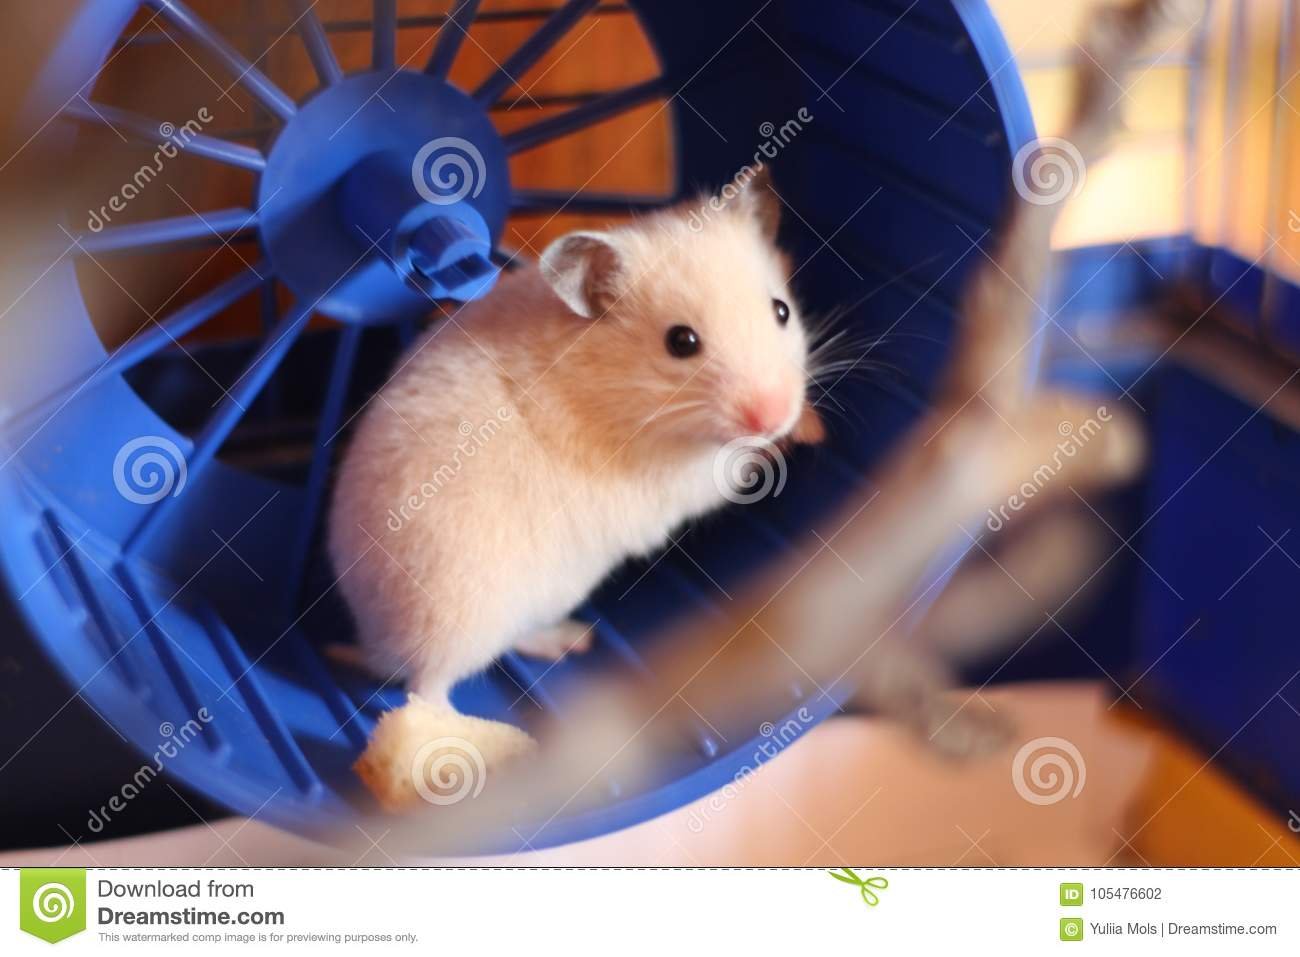 The little red hamster